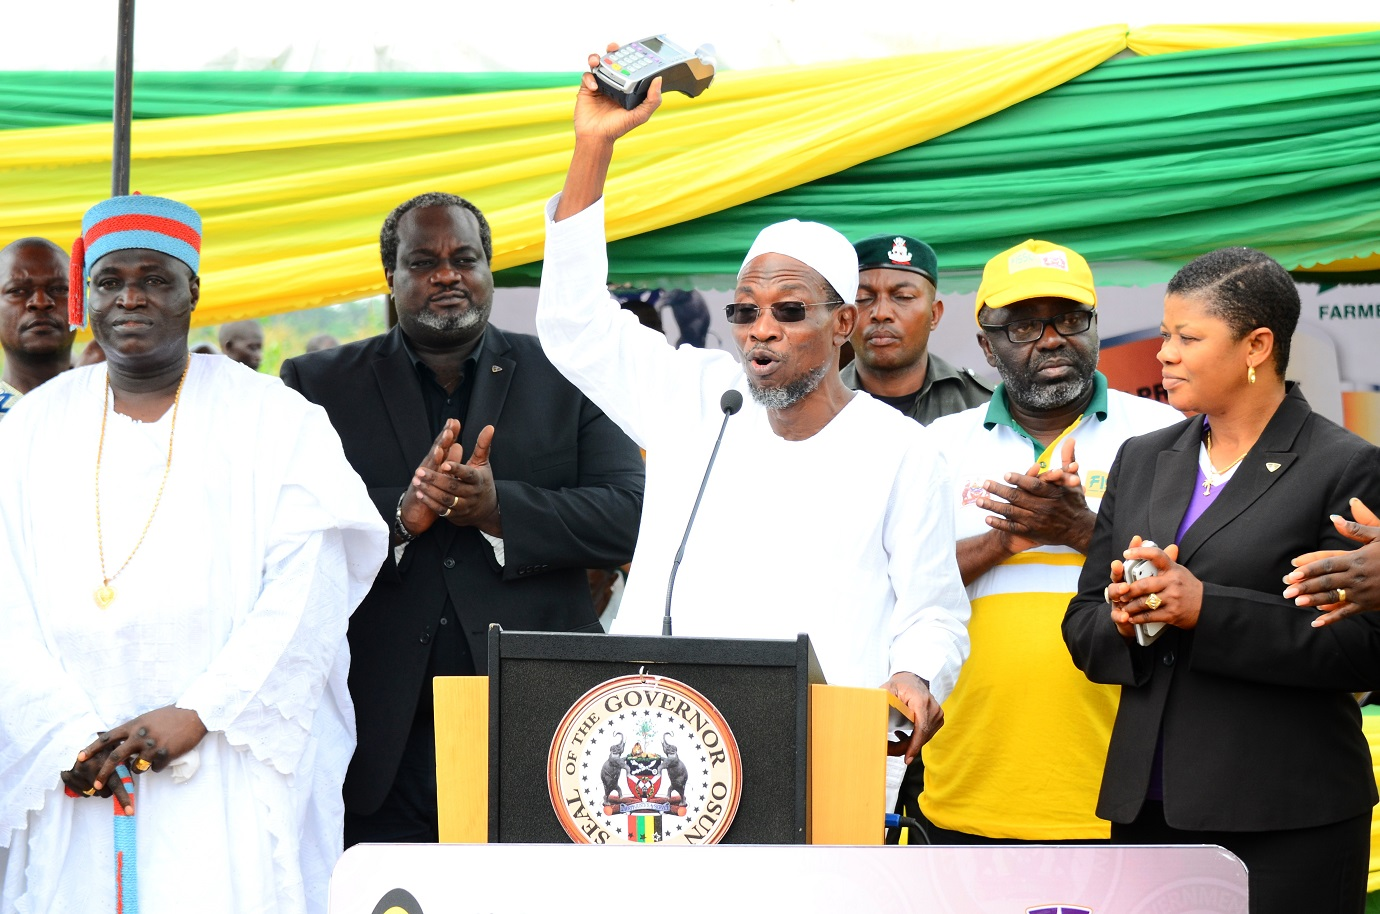 Governor State of Osun, Ogbeni Rauf Aregbesola (centre) displaying the Point of Sales (POS) Terminal to be used by Osun Farmers for Farming Input Purchase, during the Official Launching of the Framers Input and Credit Support Programme, at the Central Distribution Centre, Ede. With him are, Timi of Edeland, Oba Munirudeen Lawal (left); Coordinator, Osun Rural Enterprise and Agricultural Programme (OREAP), Dr Charles Akinola (2nd right); Zonal Manager, Wema Bank Plc, Osun Zone, Mrs Bisi Williams (right) and Head, Card Business and Services, Wema Bank Plc Lagos, Mr Demola Bolodeoku (2nd left)